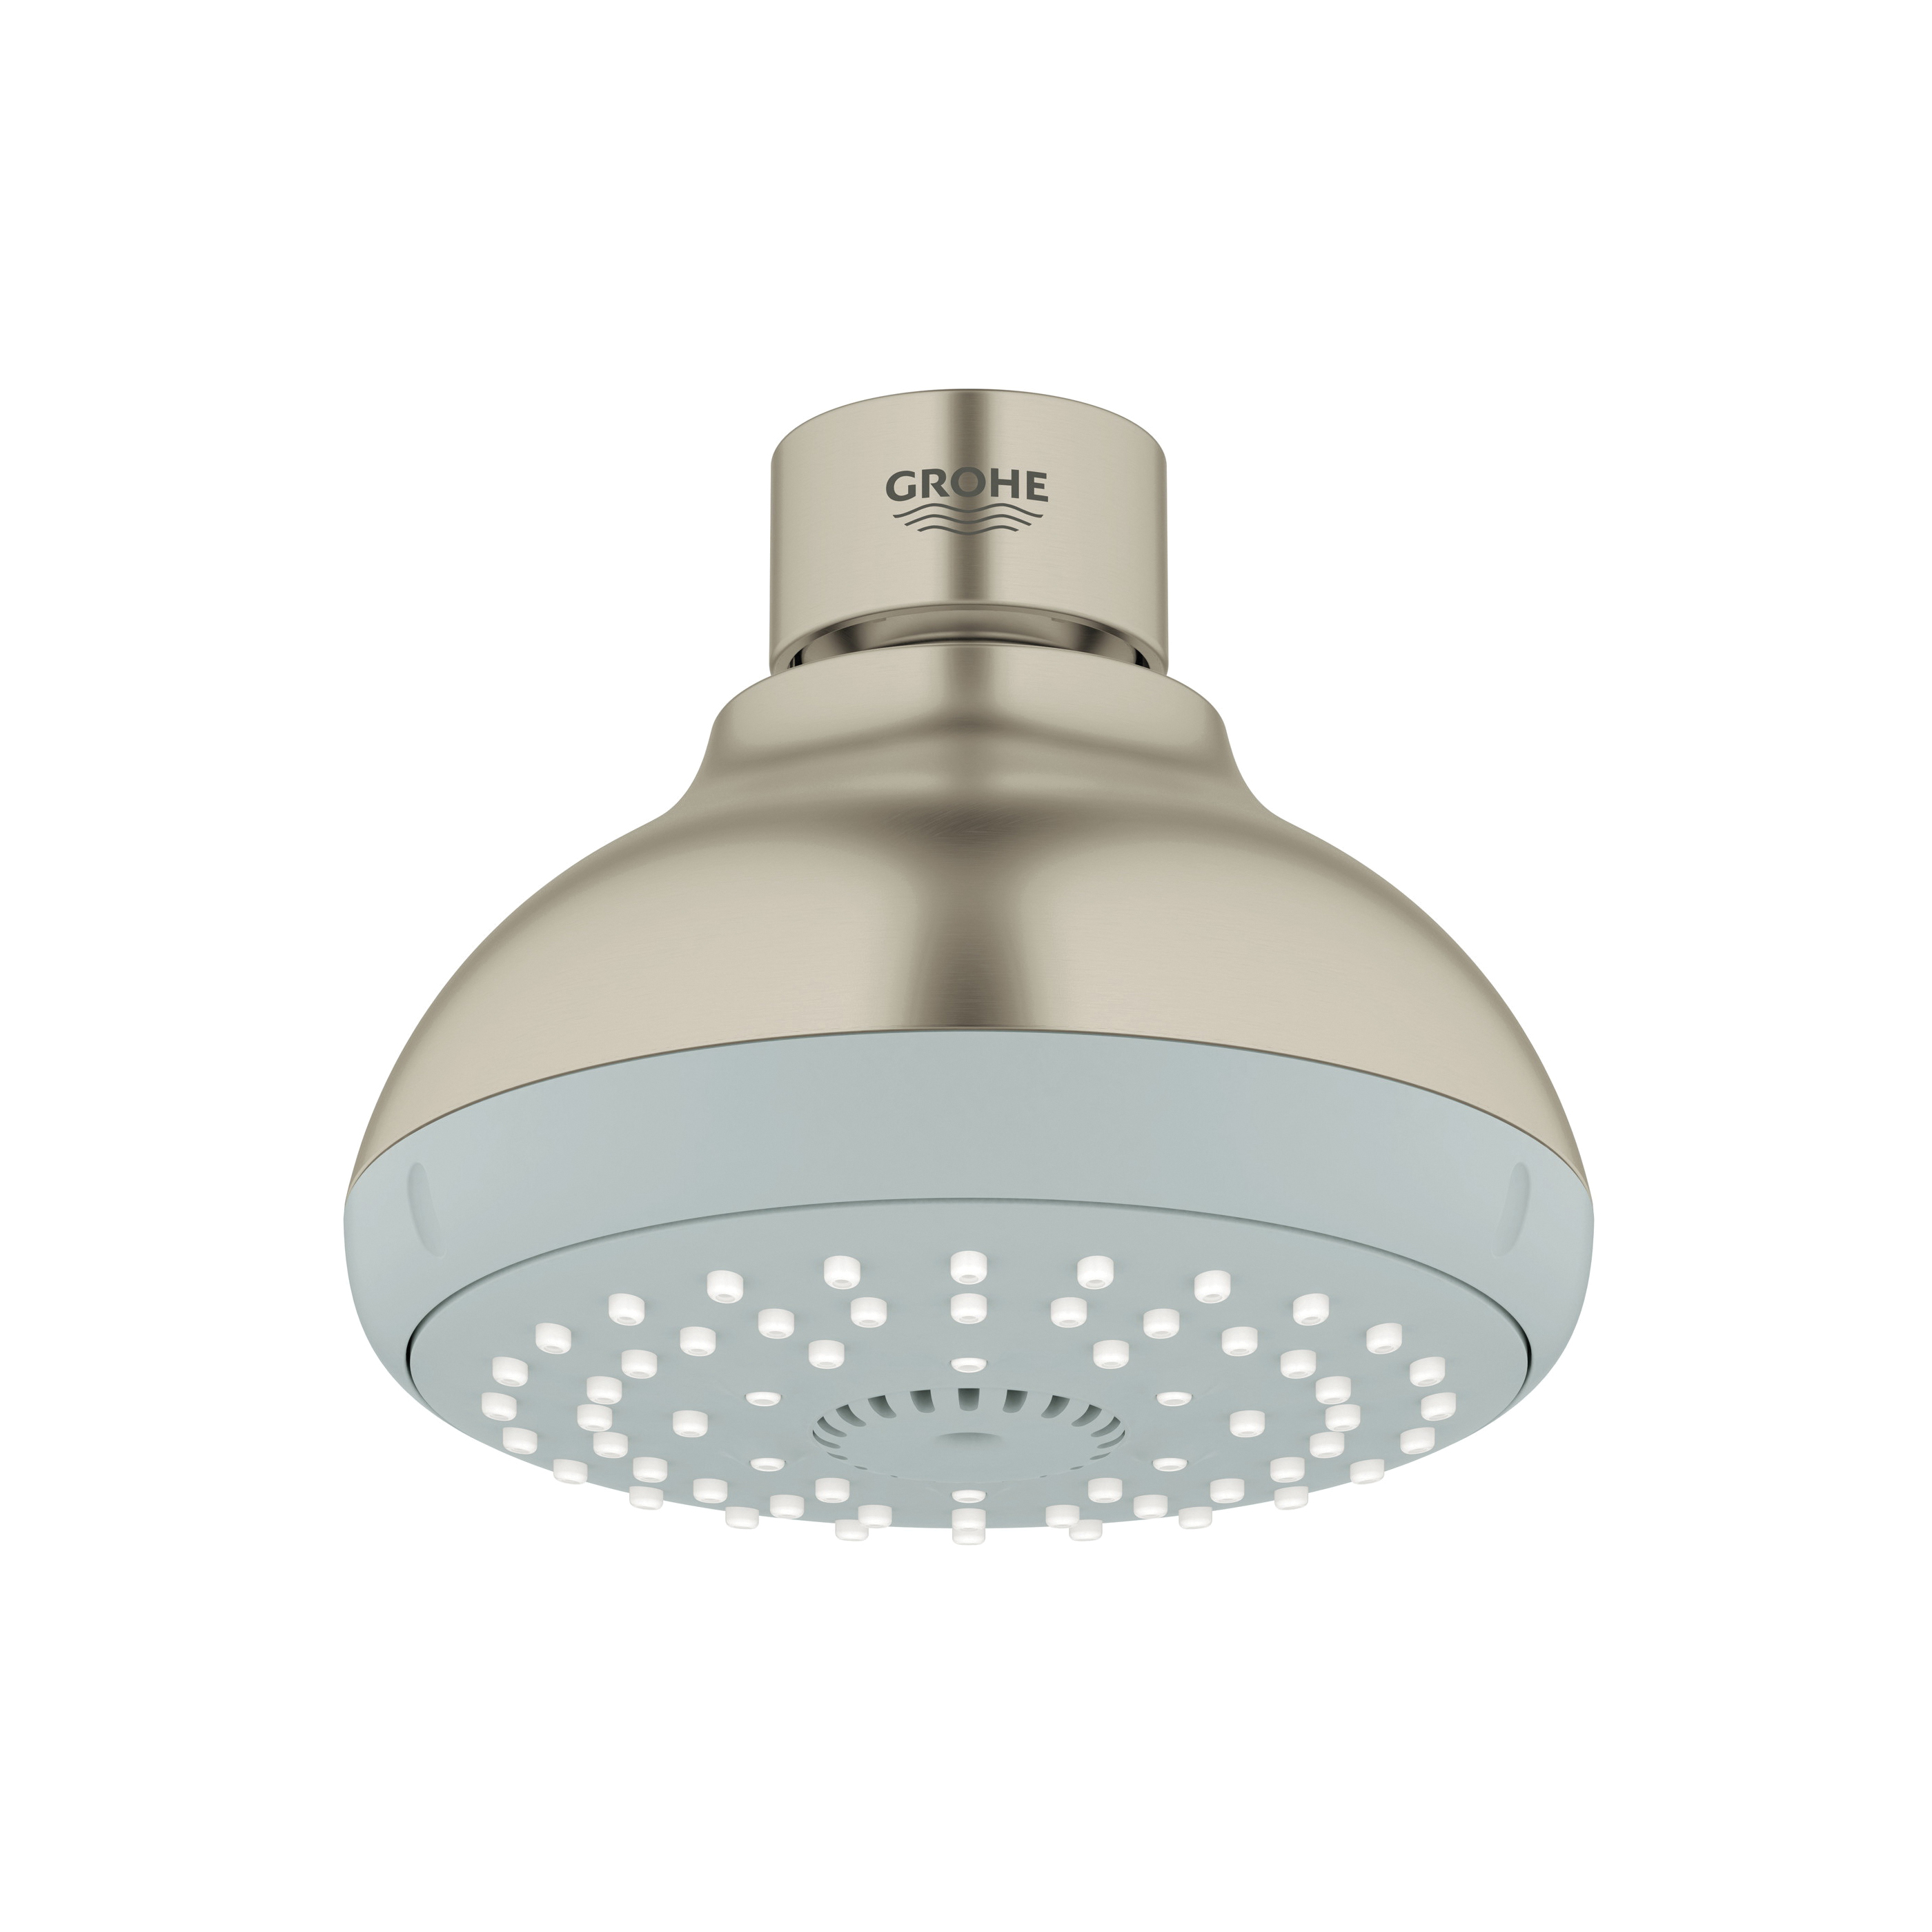 GROHE 27606EN0 New Tempesta® 100 Shower Head, 2.5 gpm, 4 Sprays, Wall Mount, 3.93 in Head, Import